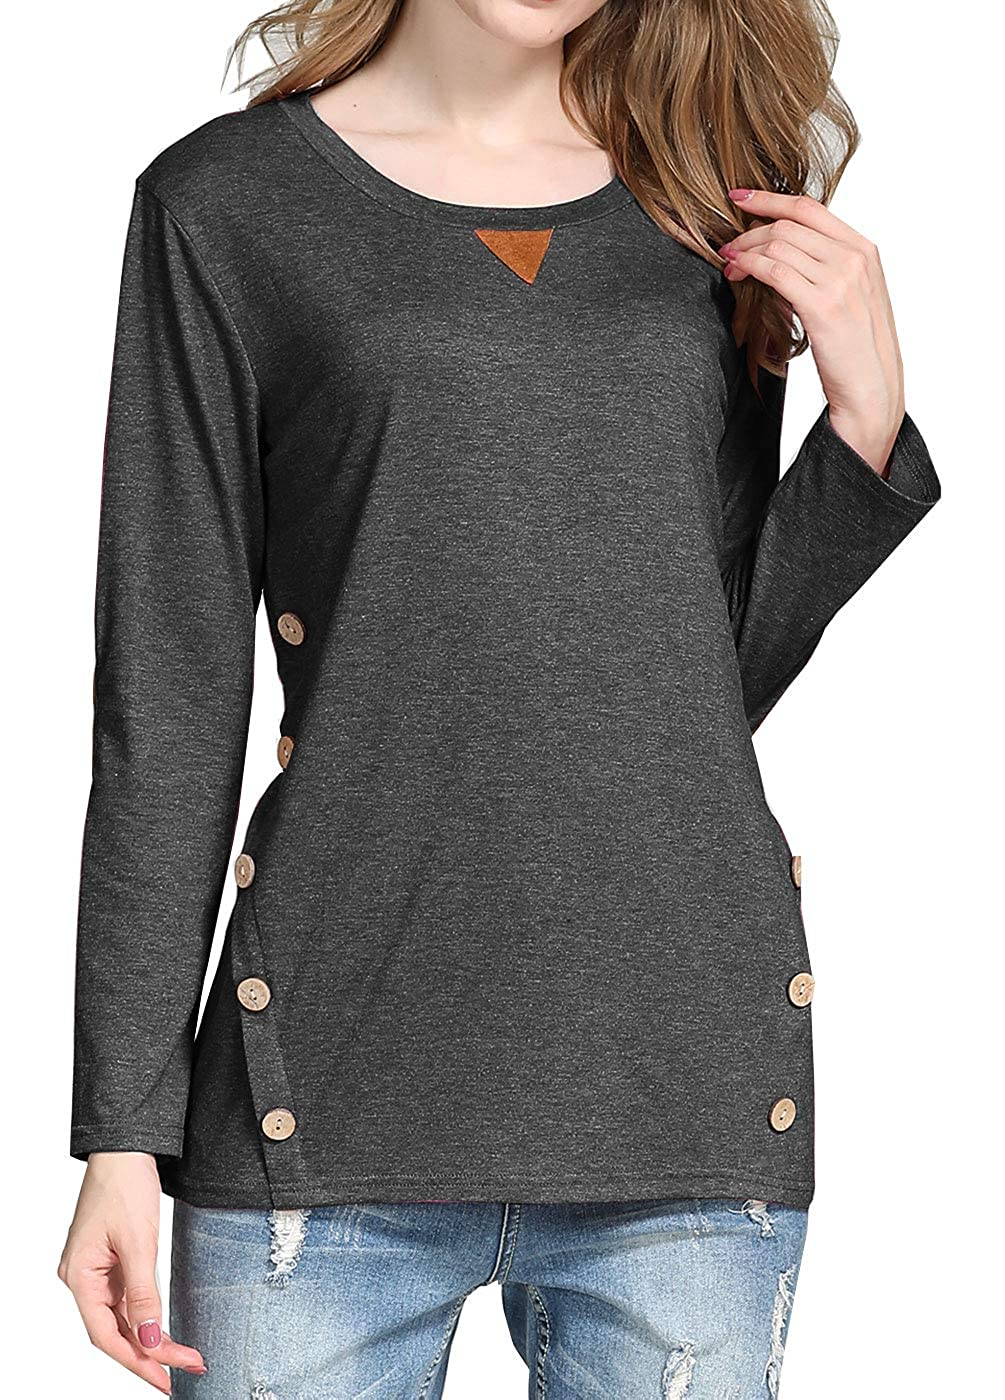 0537ad122b8 Soft and Comfortable fabric to wear. Features: Long sleeve tunic t shirt,  Round neck tees blouse, Trendy Faux Suede Elbow patched shirts, Solid color  ...